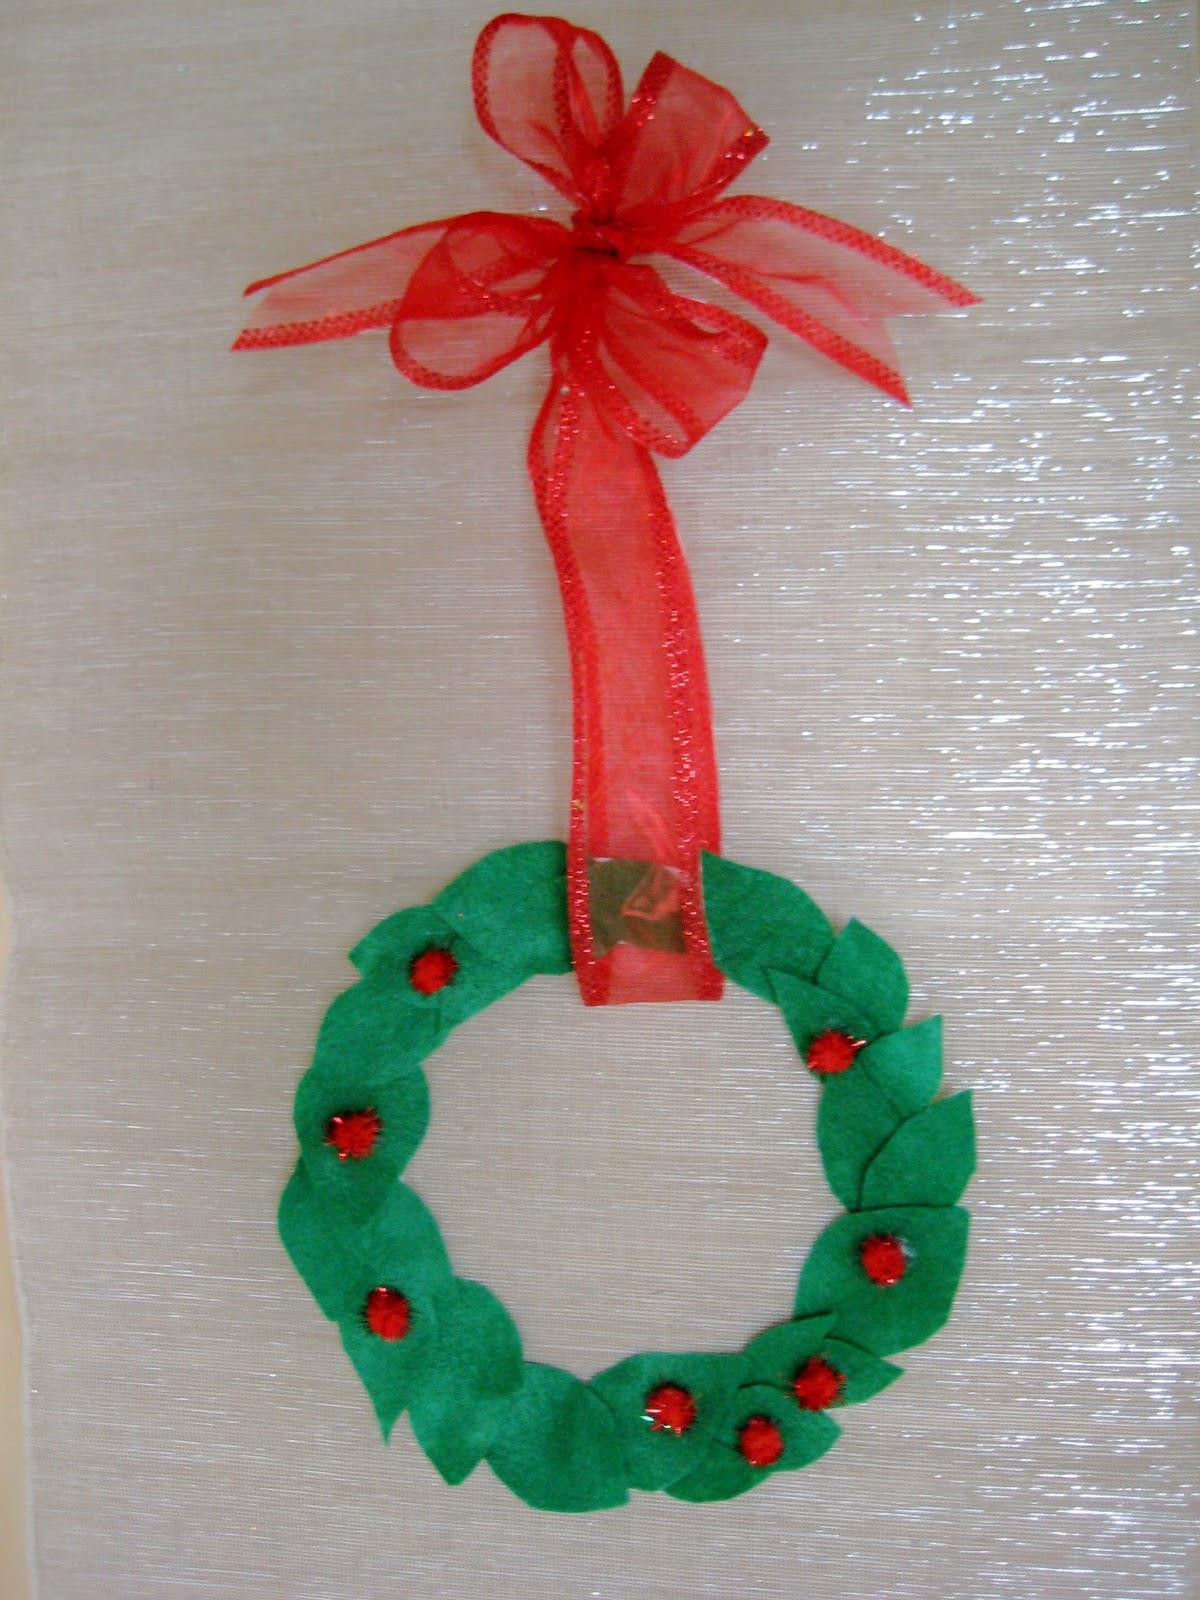 Best ideas about Easy Crafts For Preschoolers . Save or Pin easy preschool christmas crafts Now.